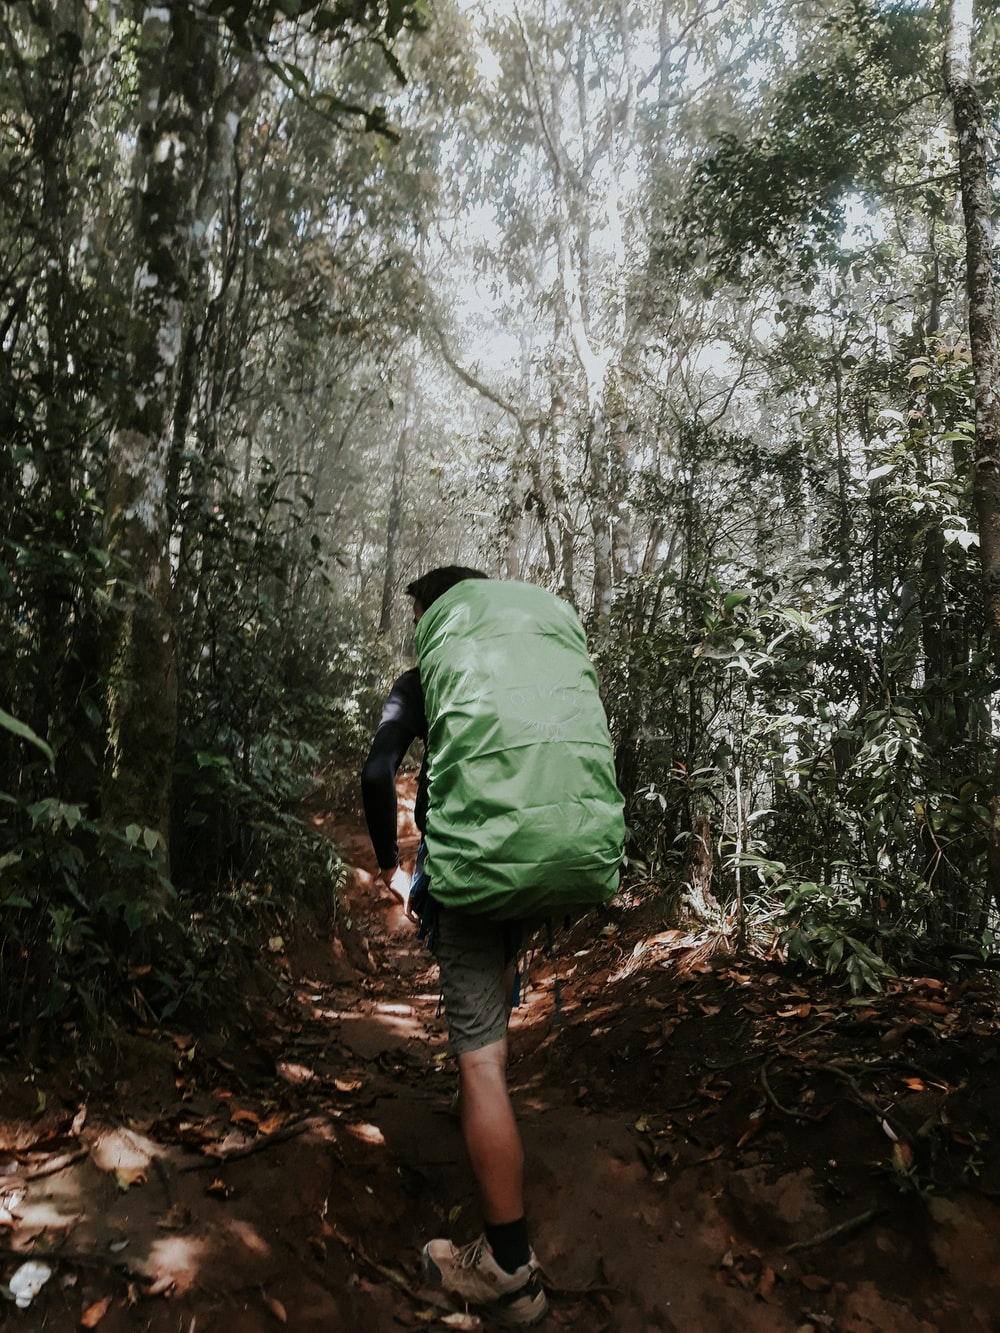 person carrying green hiking bag